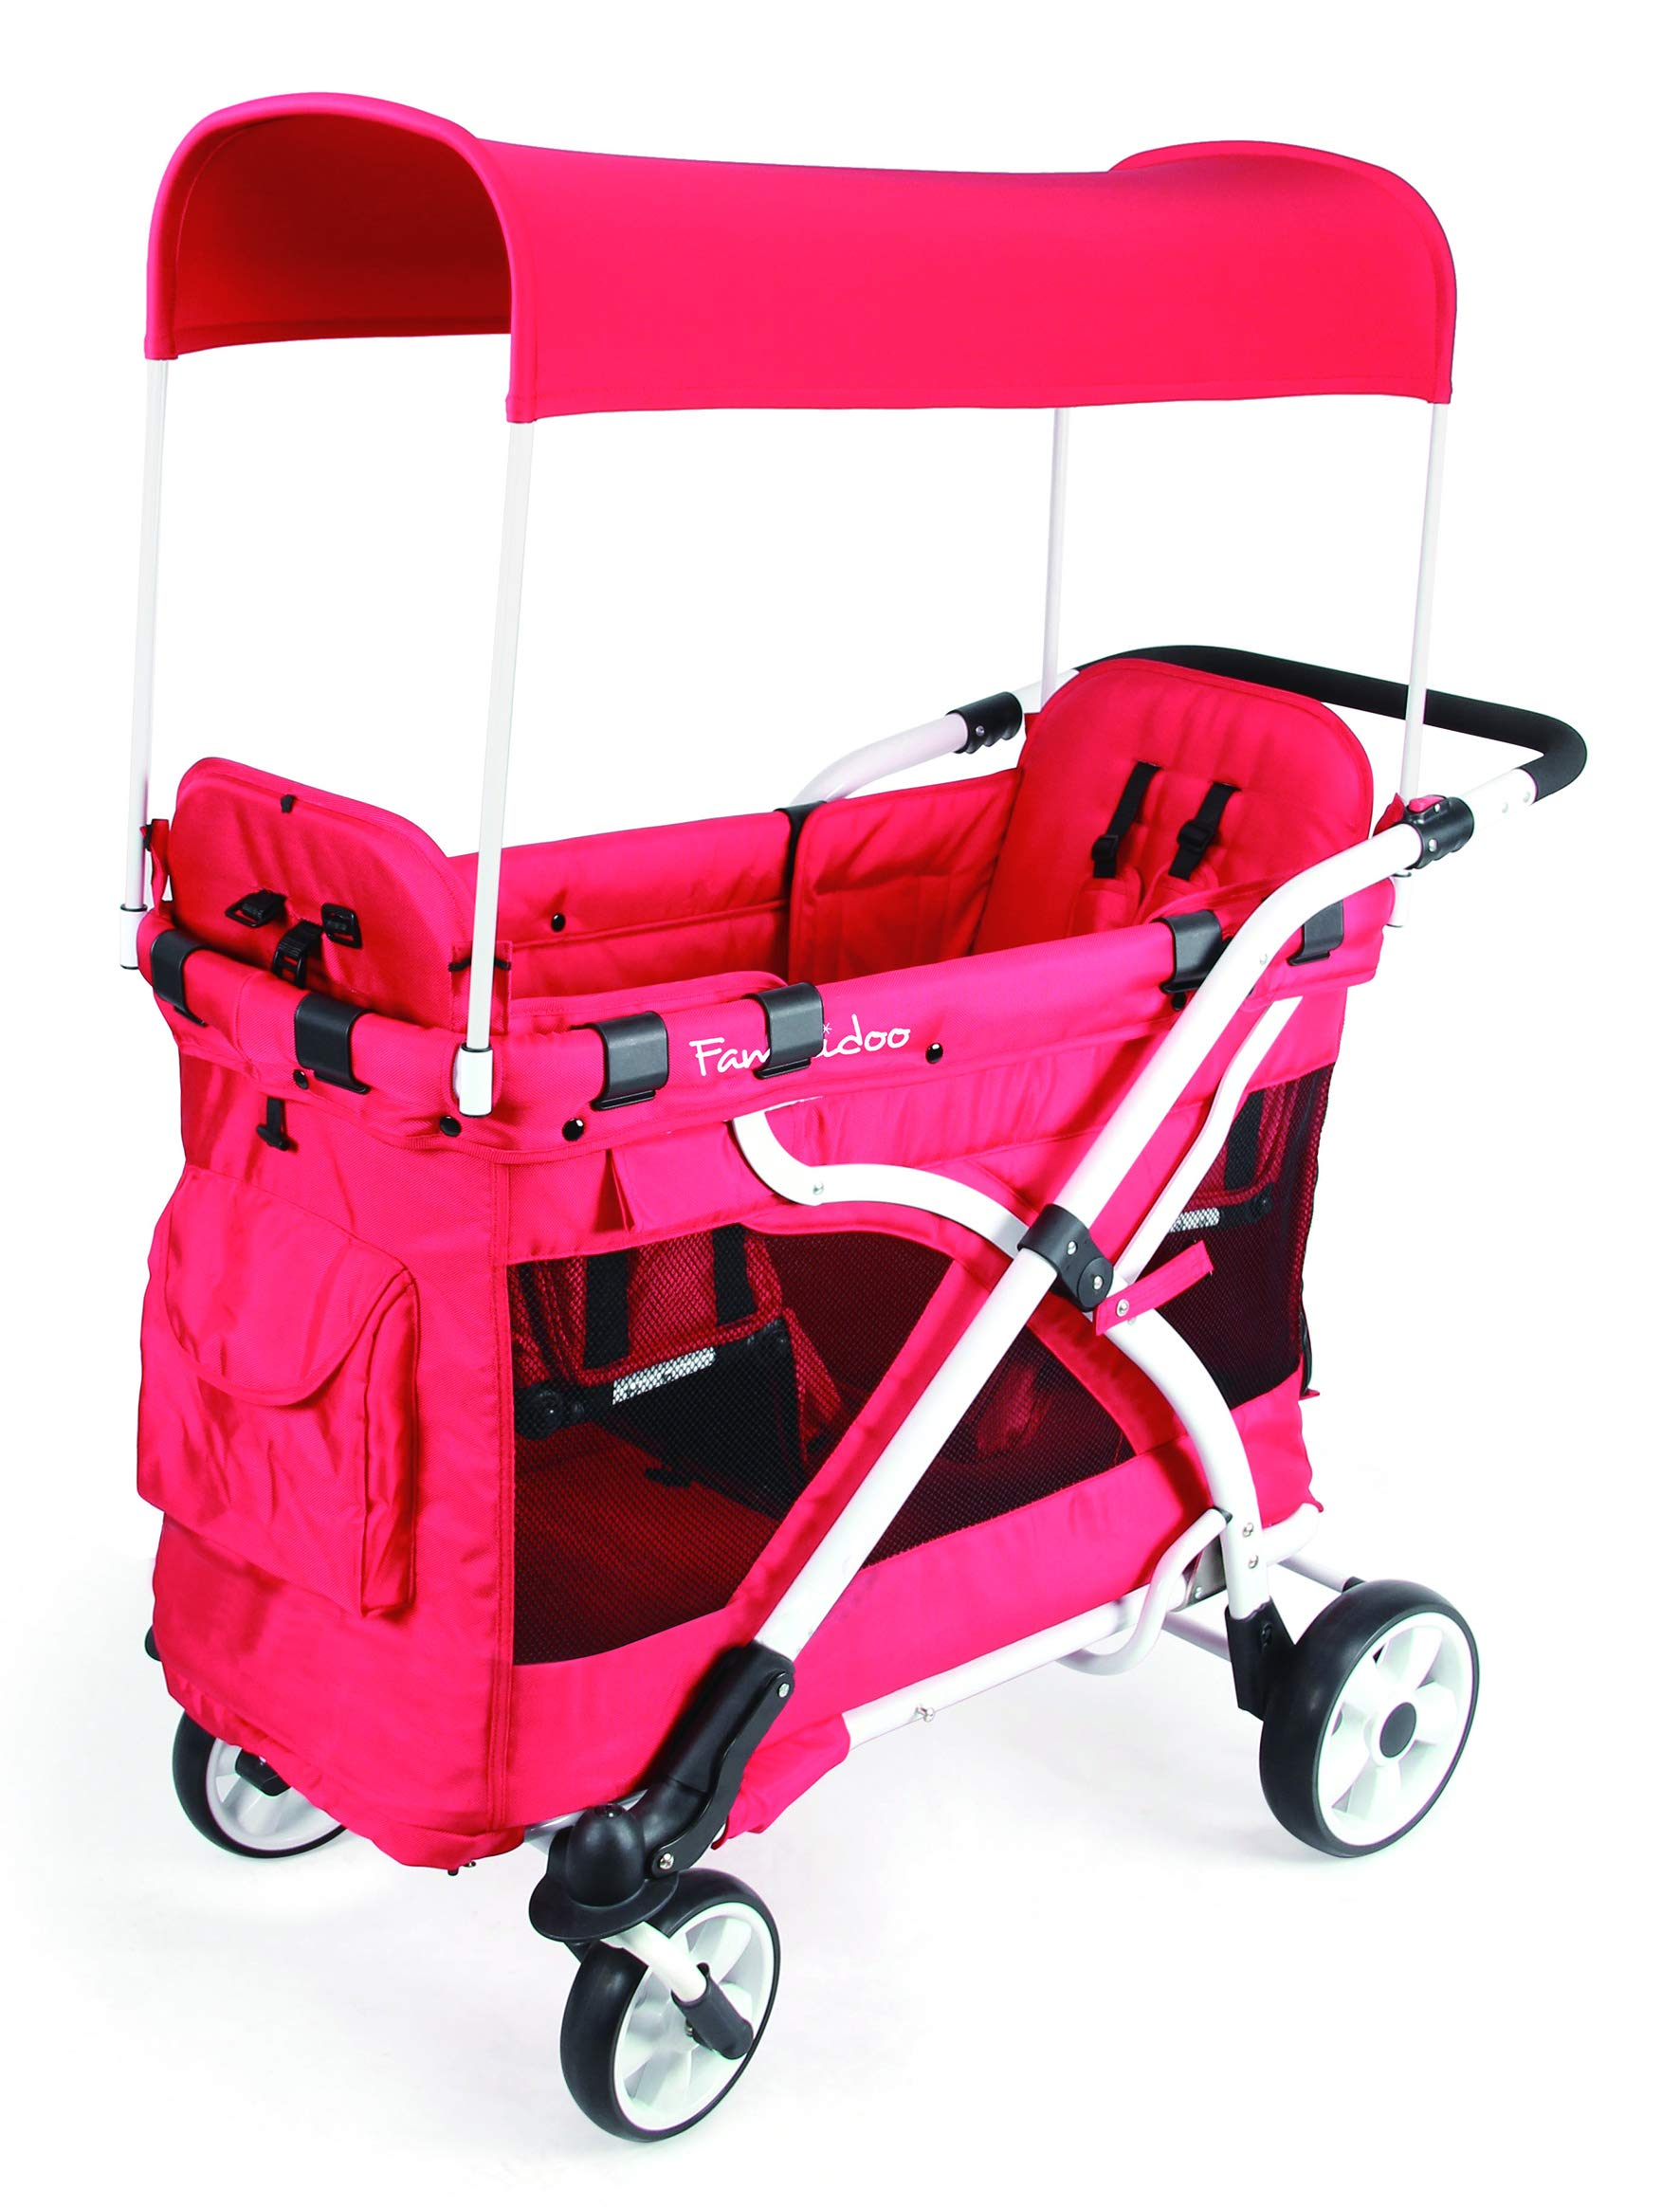 Familidoo Multi-Purpose 6 in 1 Large Twin Size Toddler Baby Folding Stroller Chariot Wagon, Red by FAMILIDOO (Image #5)